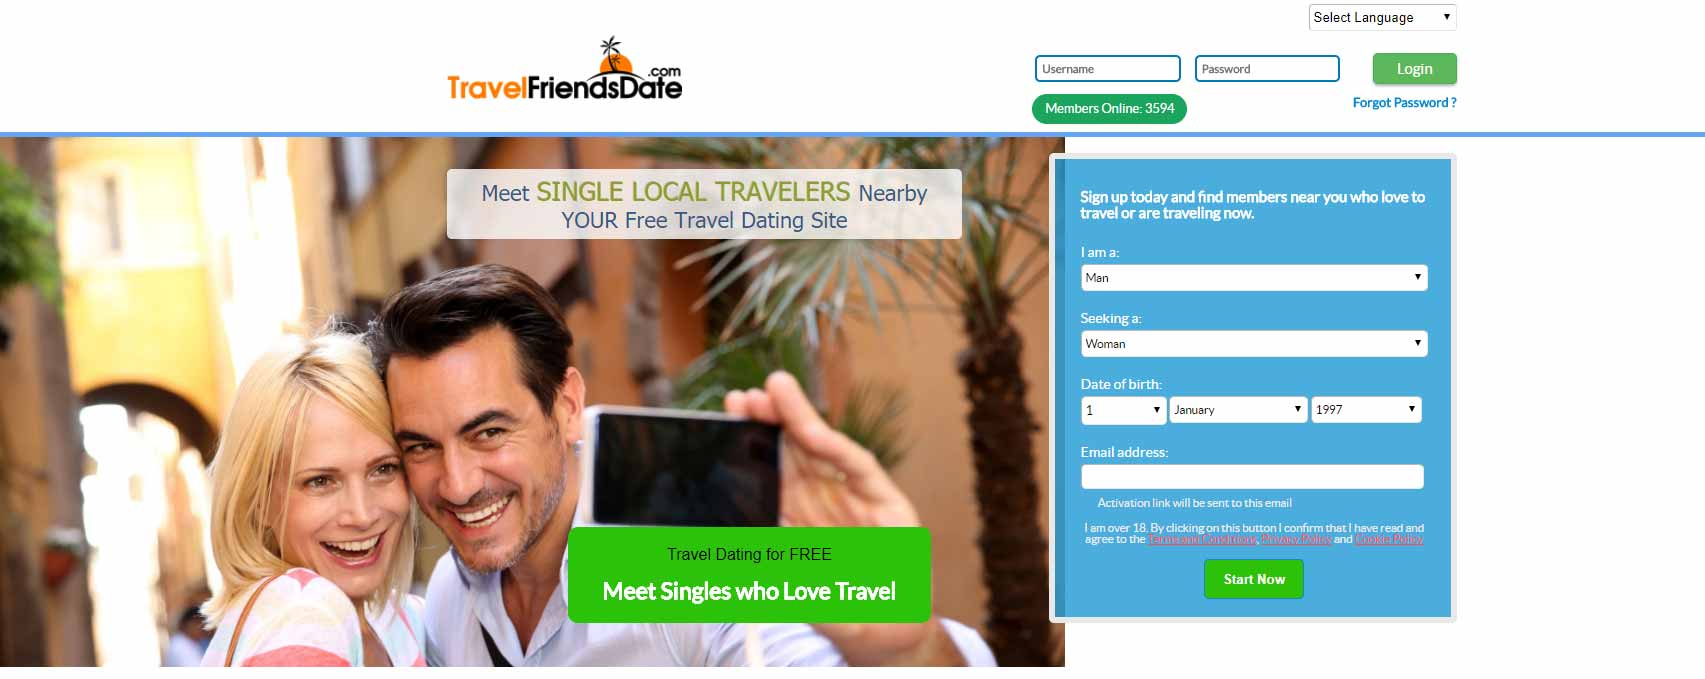 Travel Friends Date home page image for international travel and dating site review